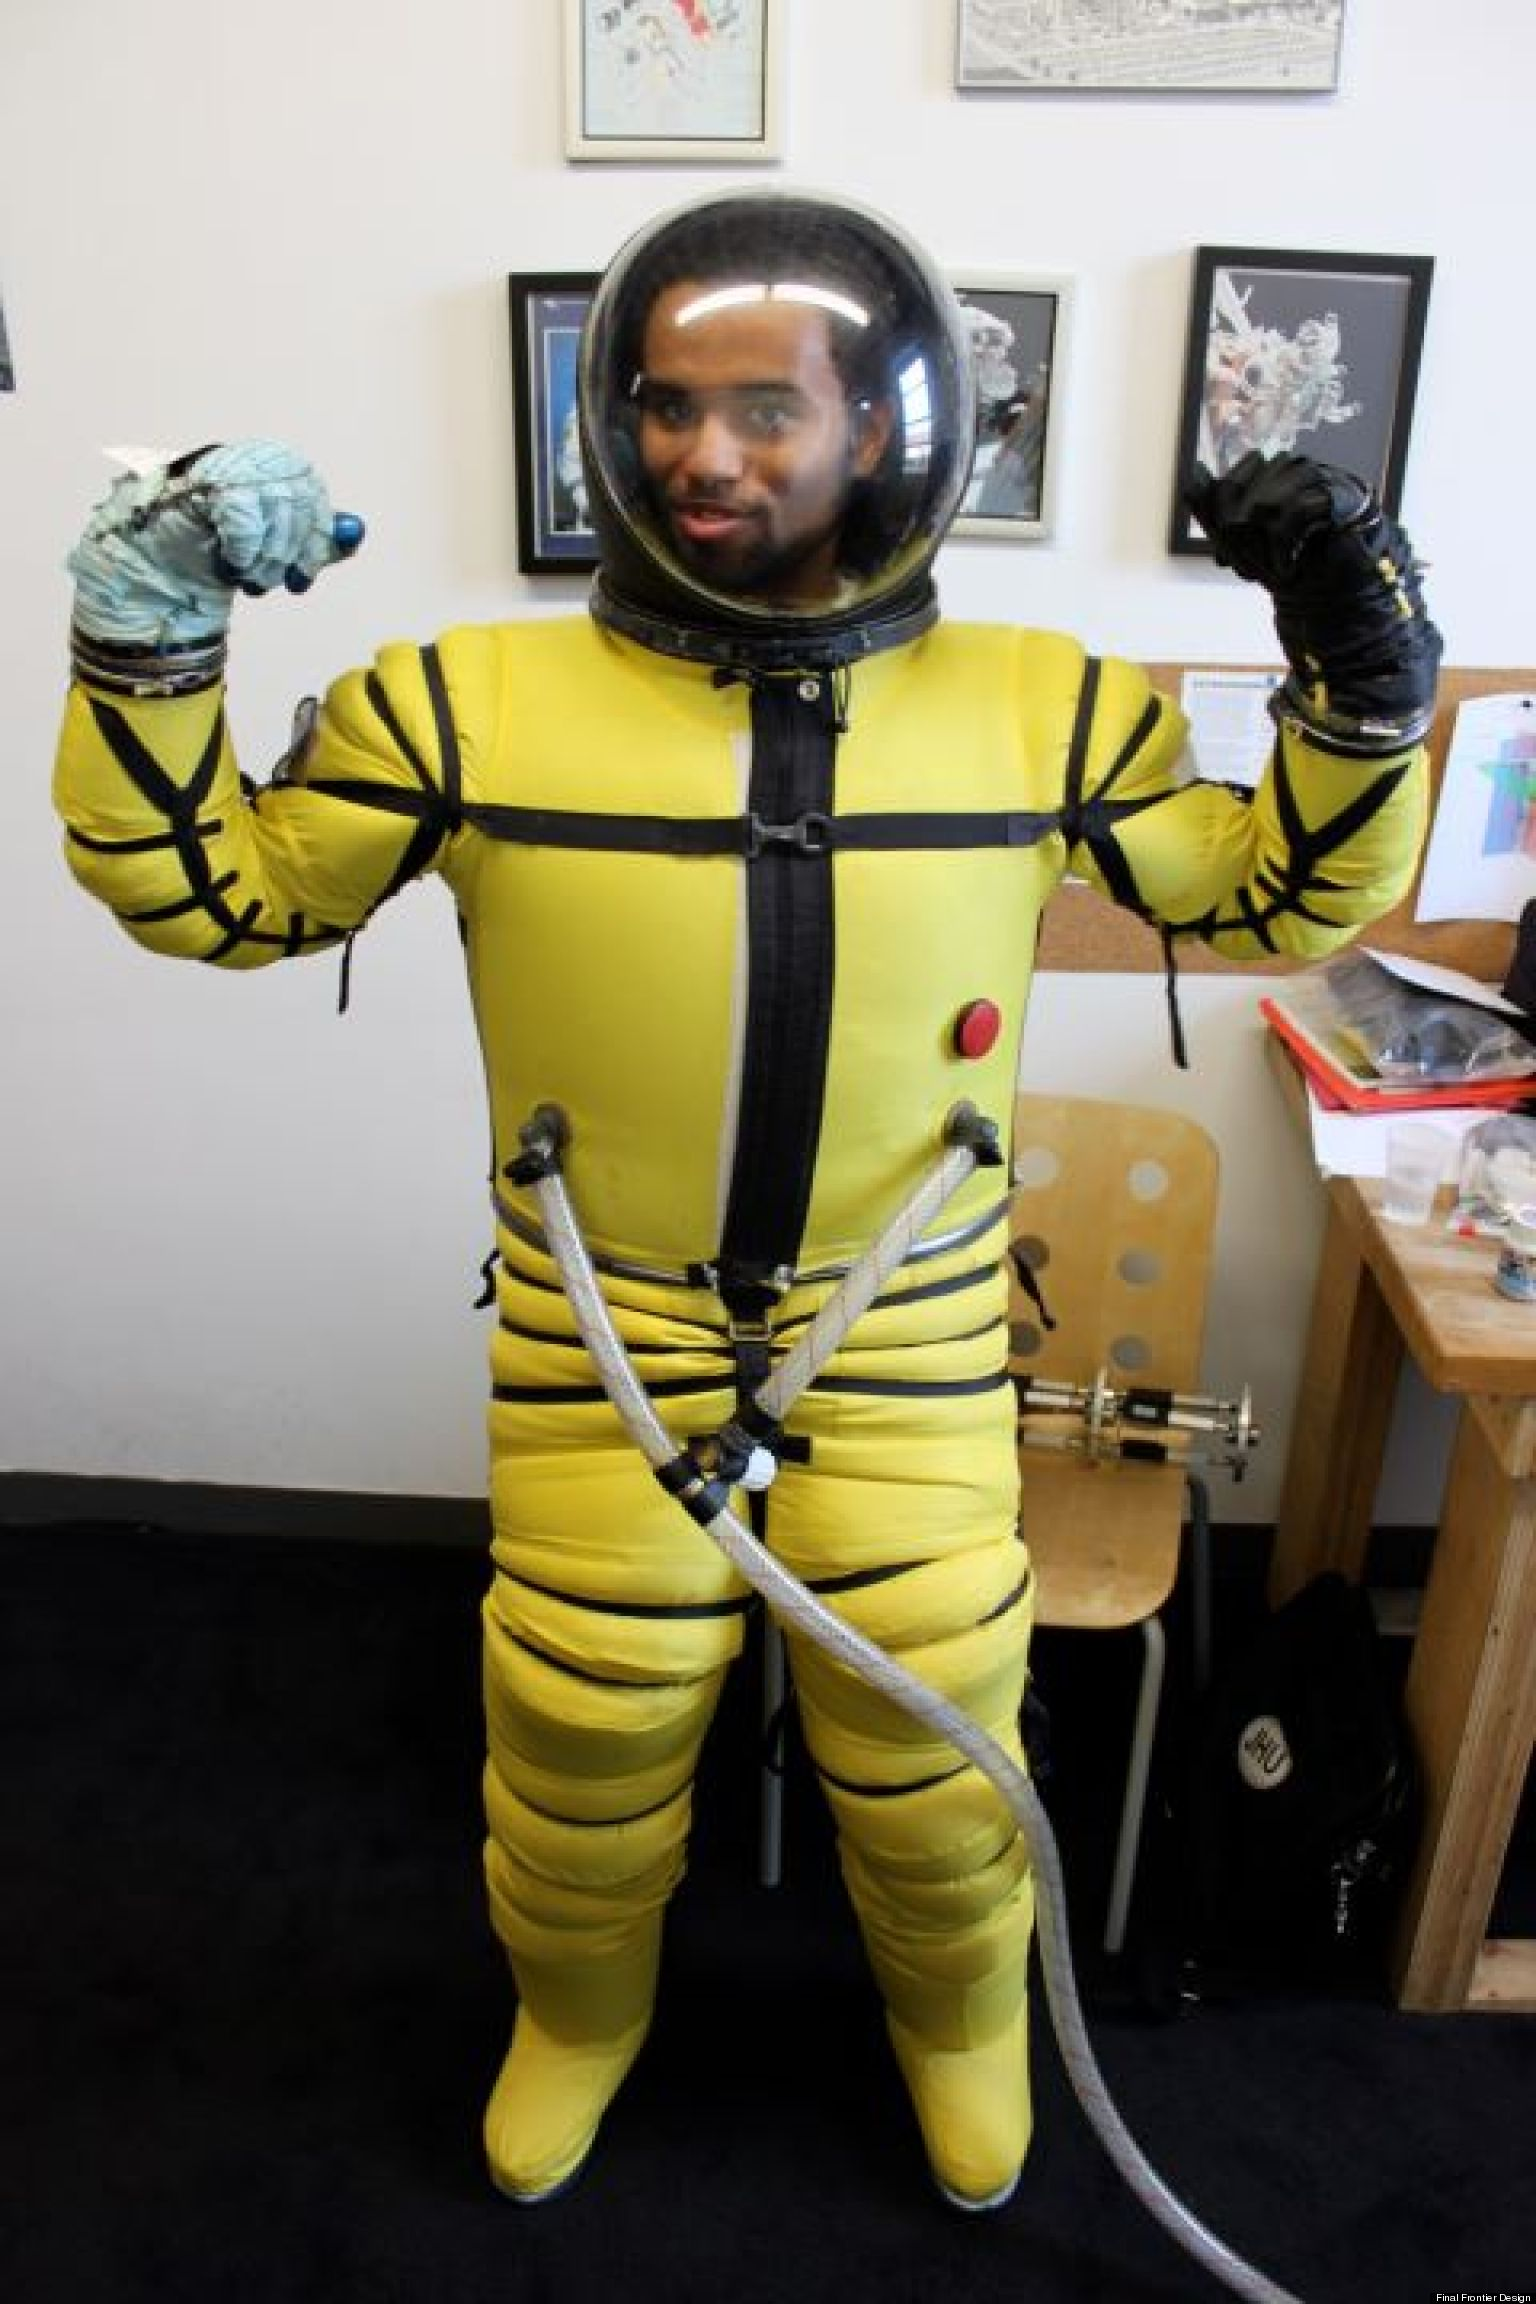 real space suit costume - photo #16